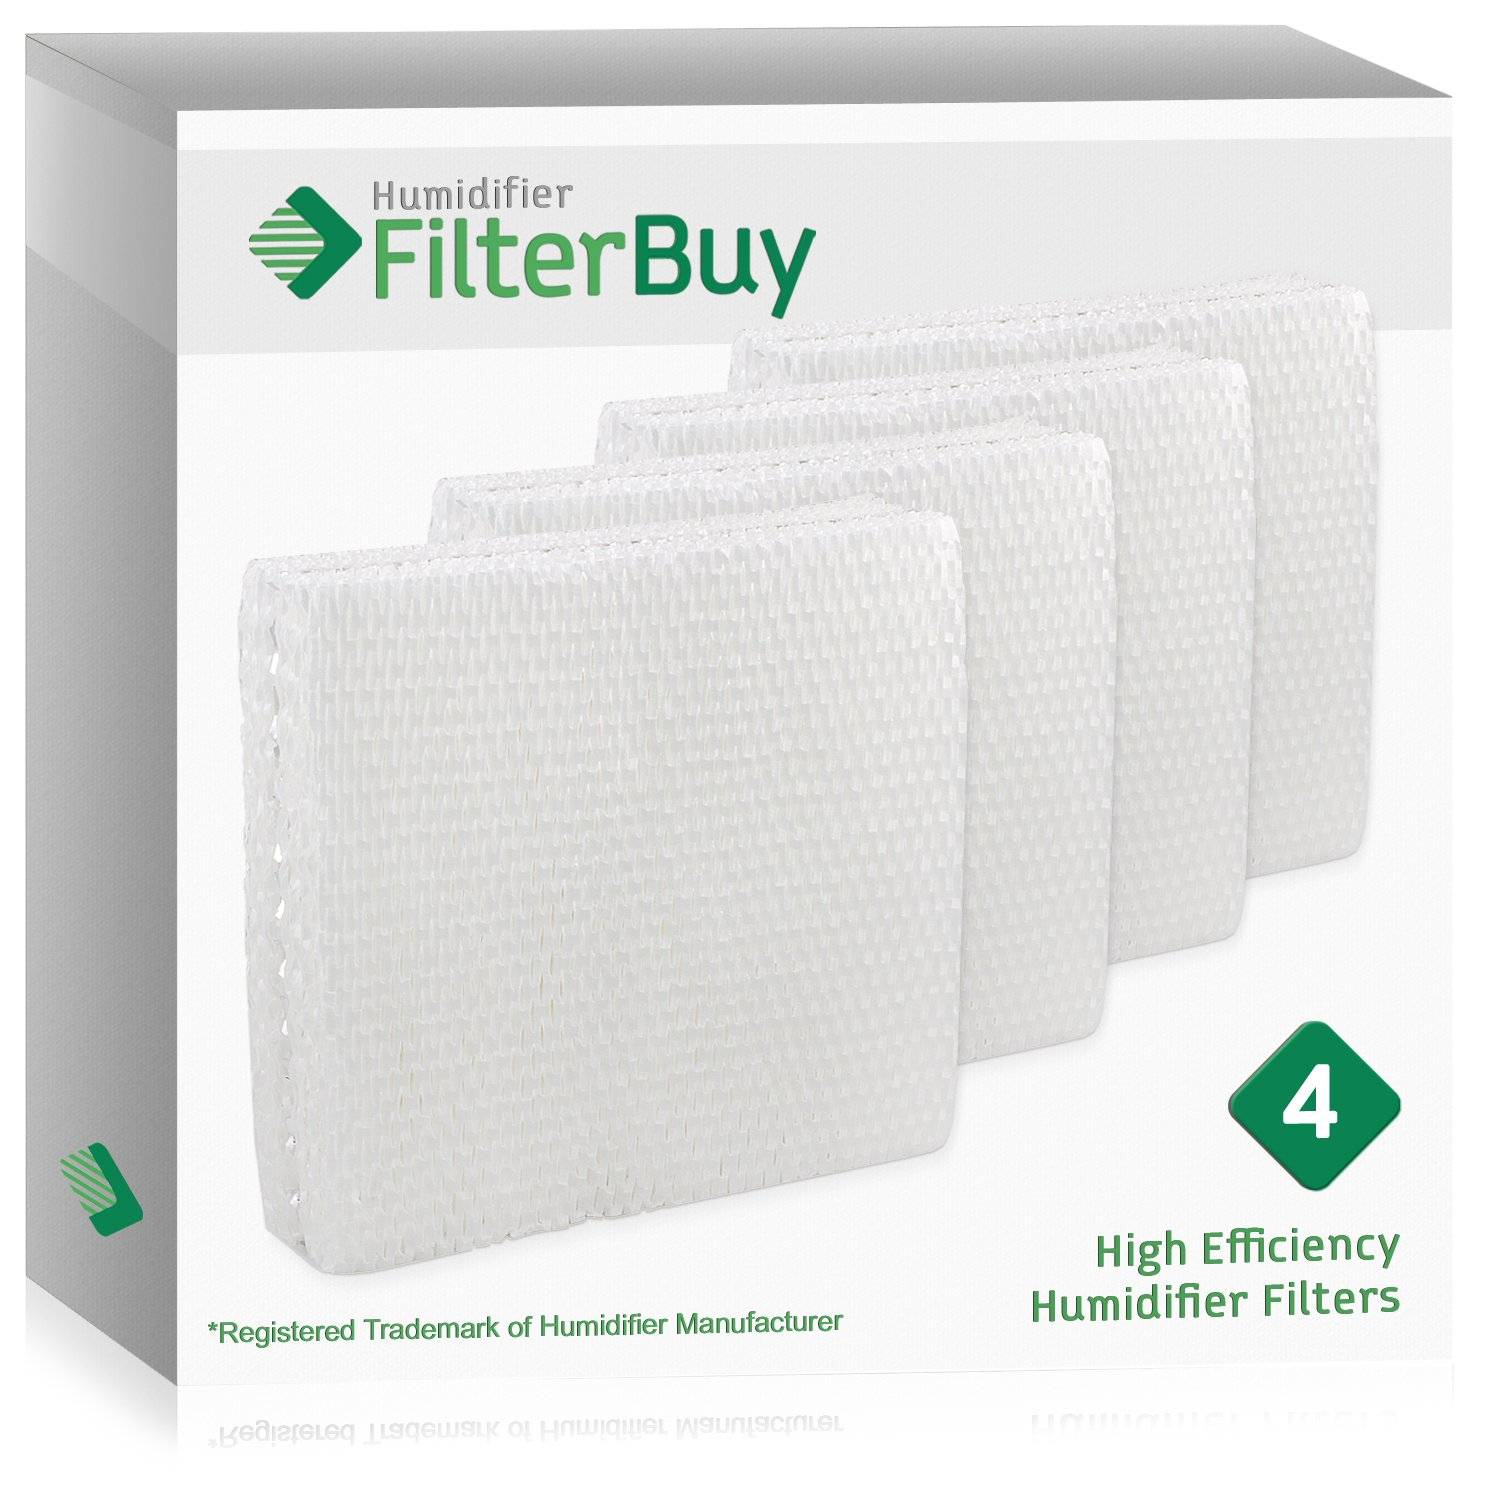 FilterBuy Replacement Humidifier Filters Compatible with Lasko THF15, Duracraft AC-809 & AC-815, Sears Kenmore 14809 Humidifier Wick Filters. Pack of 4.